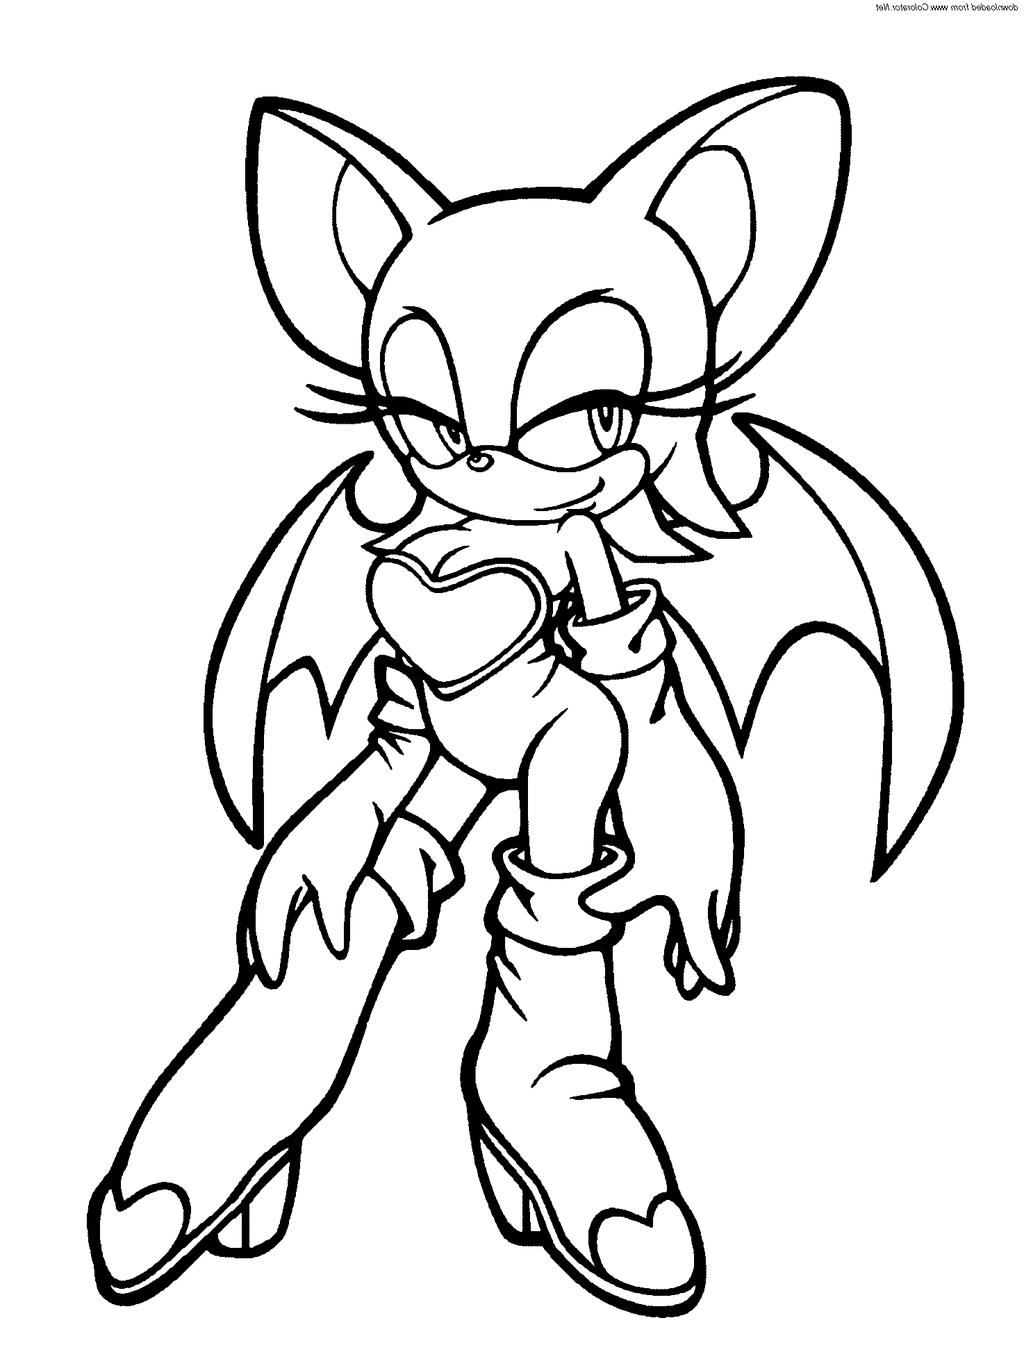 Sonic Girls - Free Coloring Pages